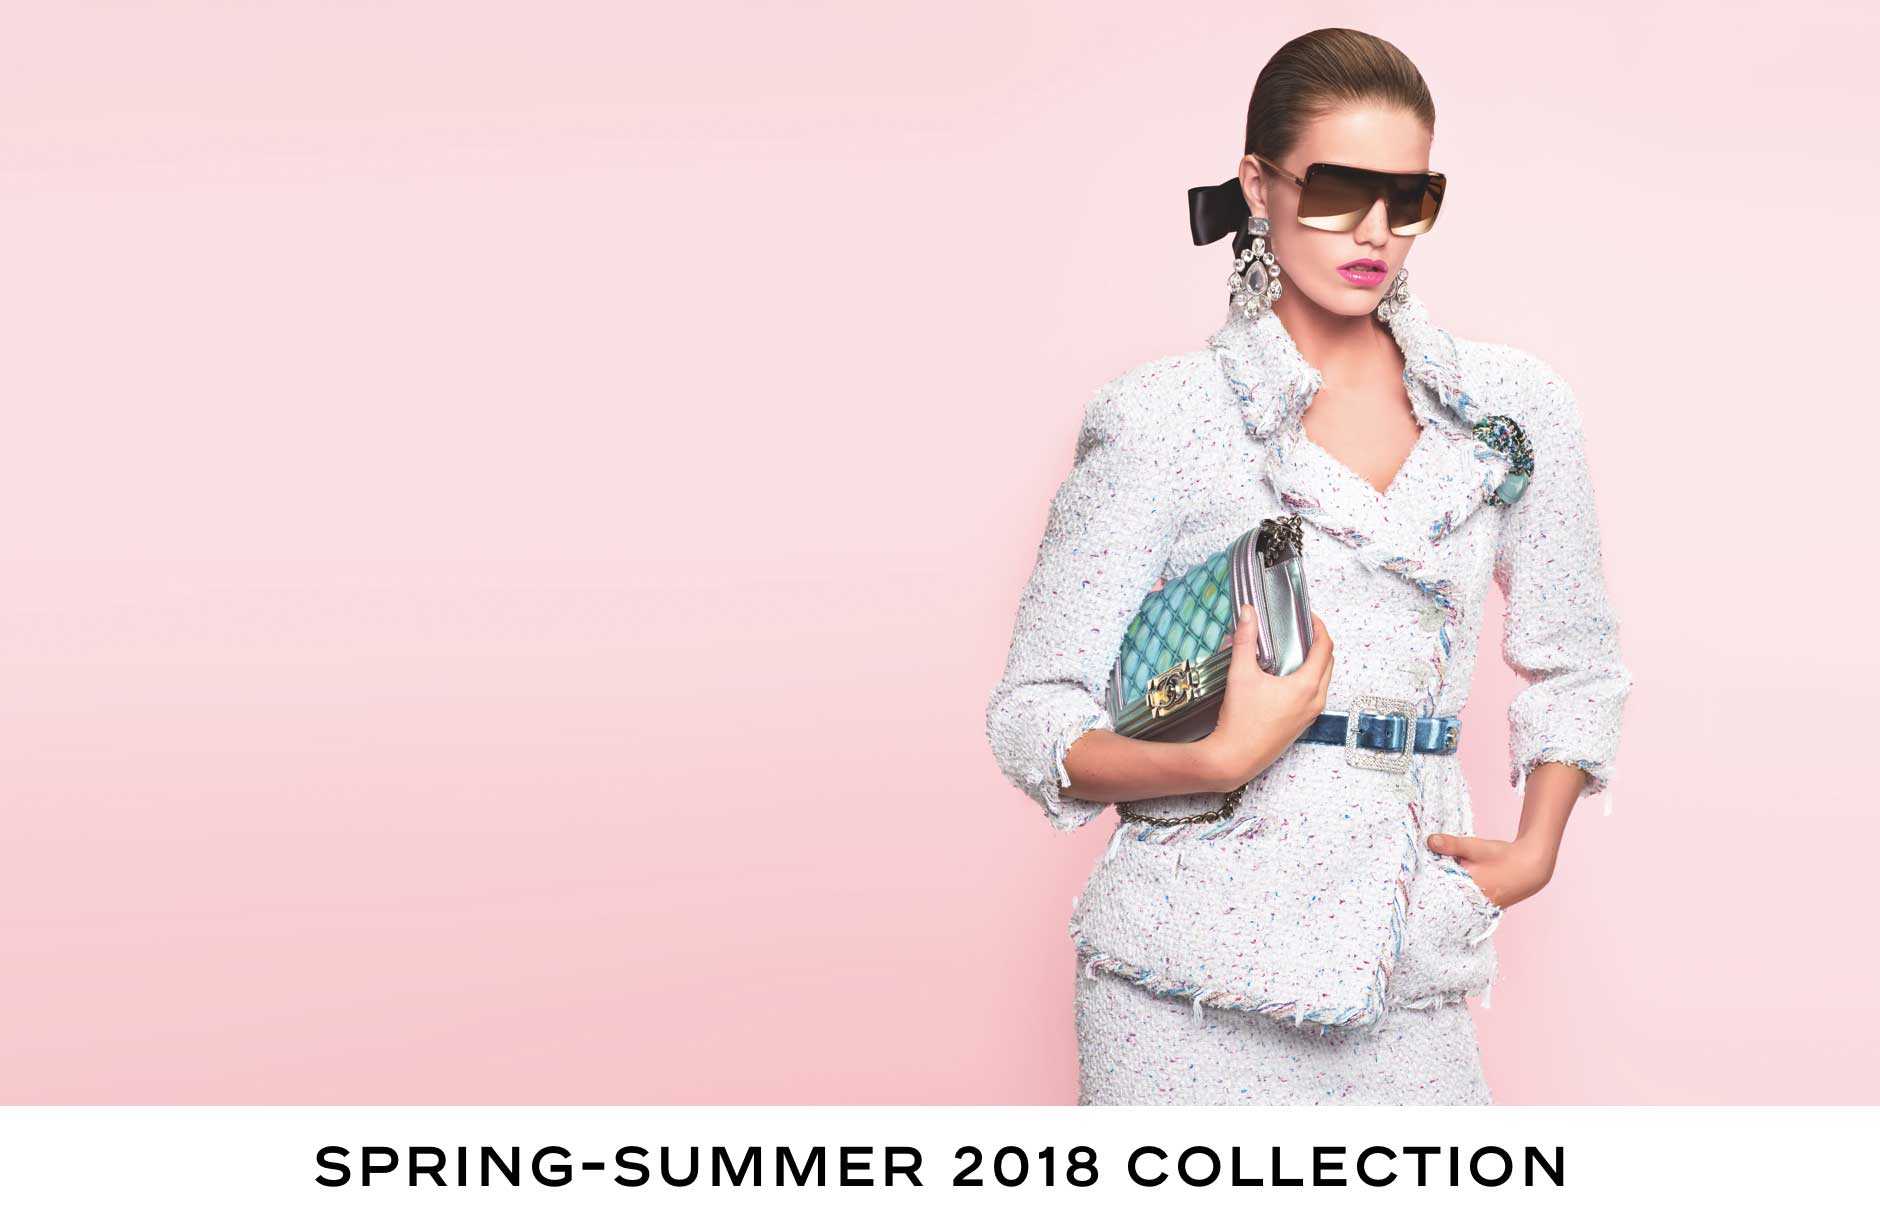 Spring-Summer 2018 Collection